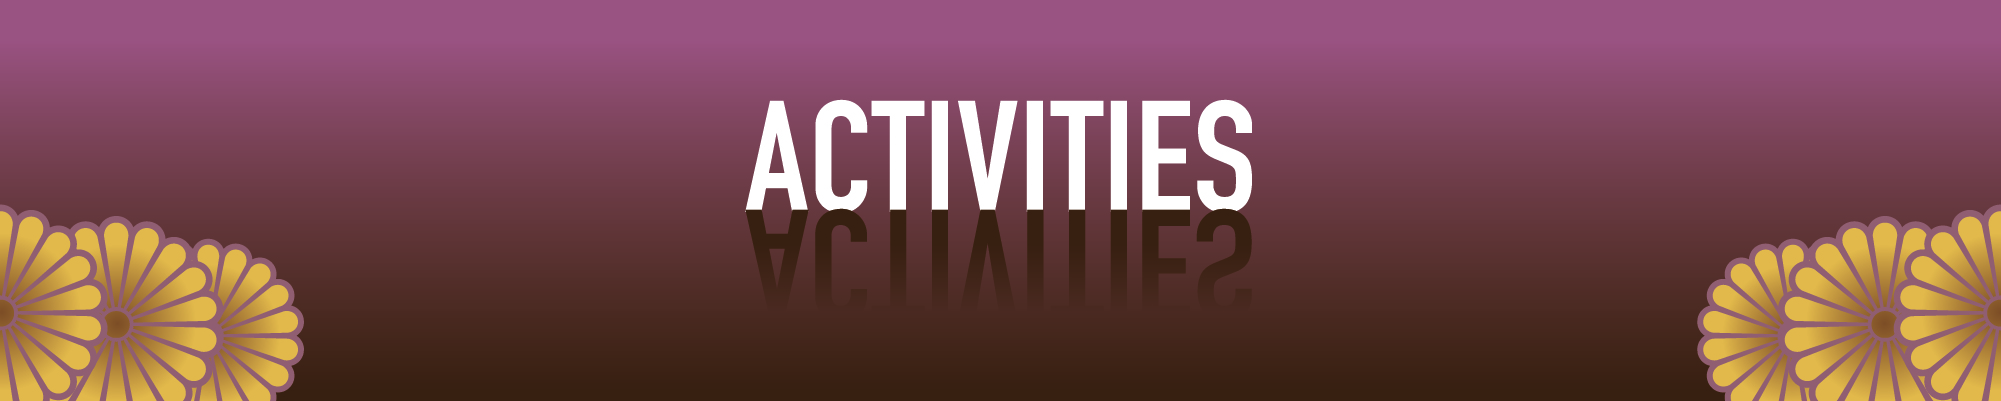 Section Title - Activities